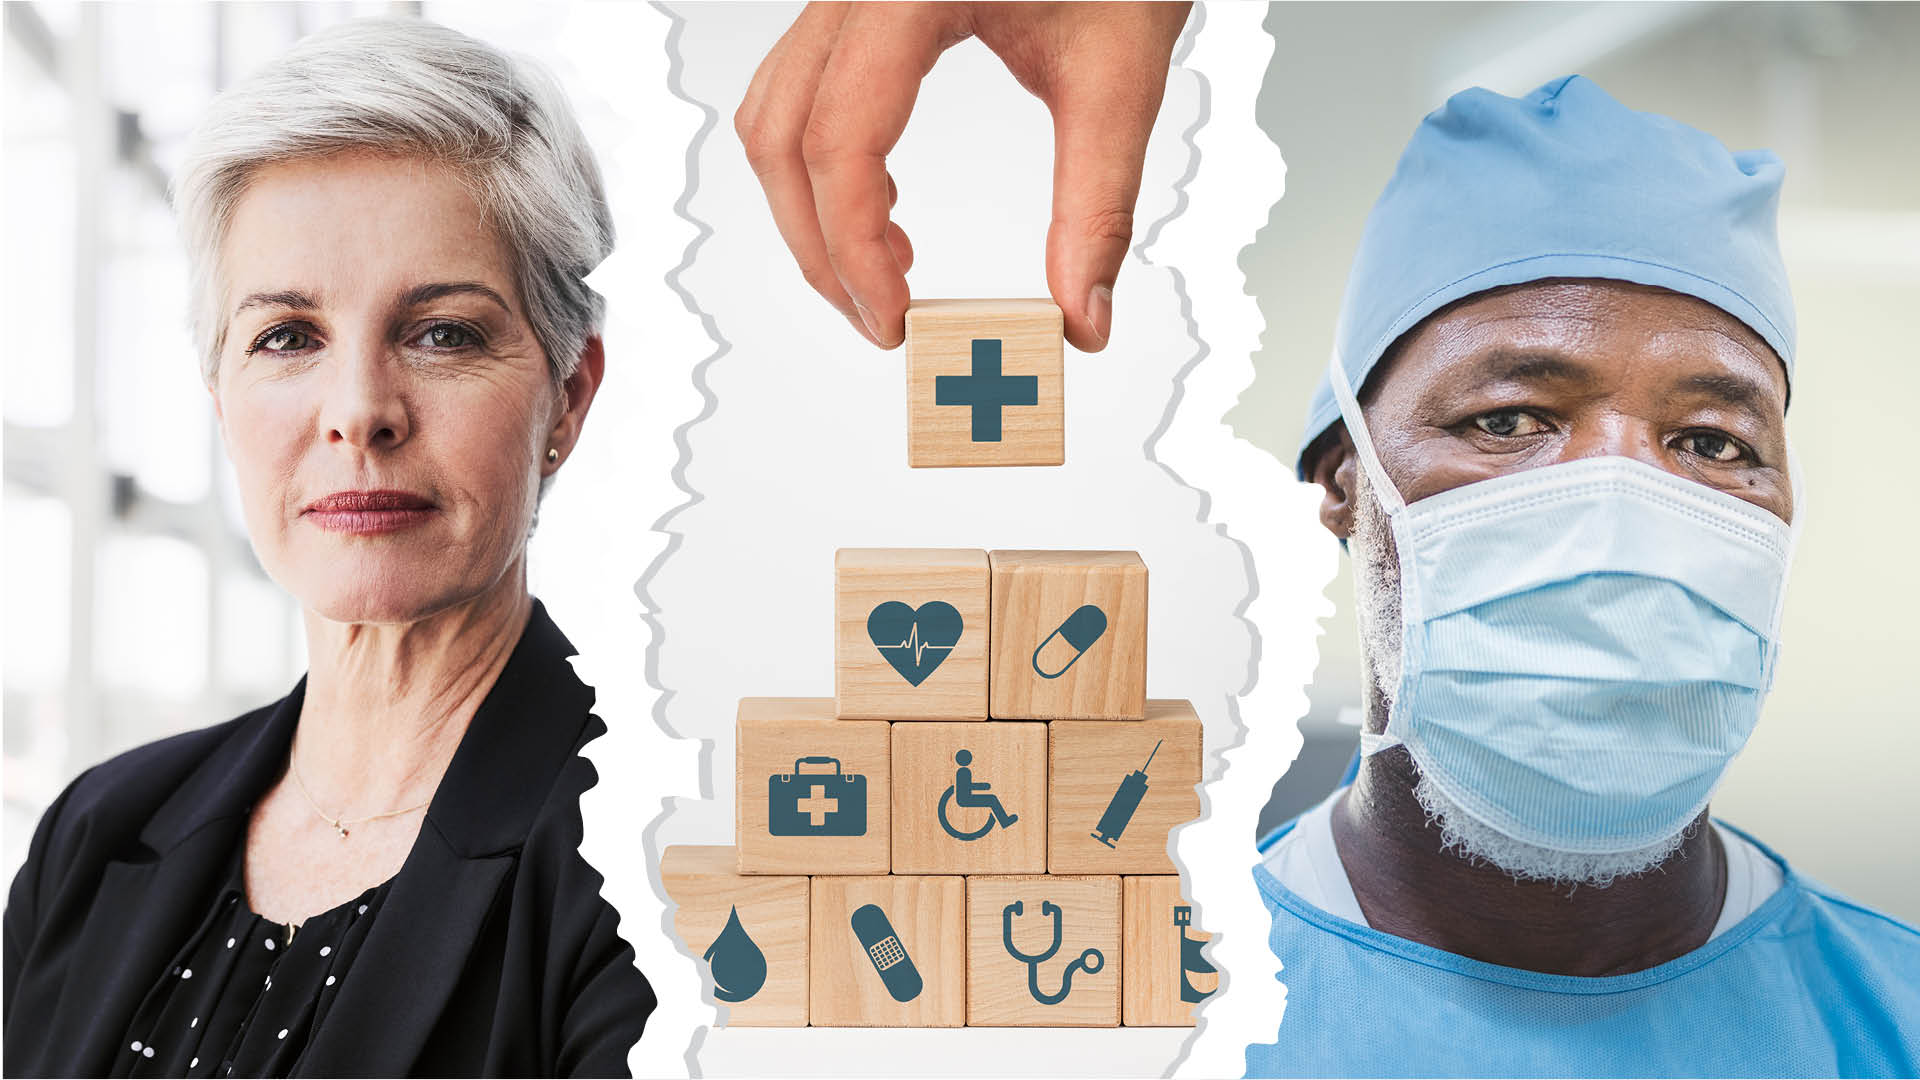 employer and physician torn apart by wooden blocks representing health care insurance